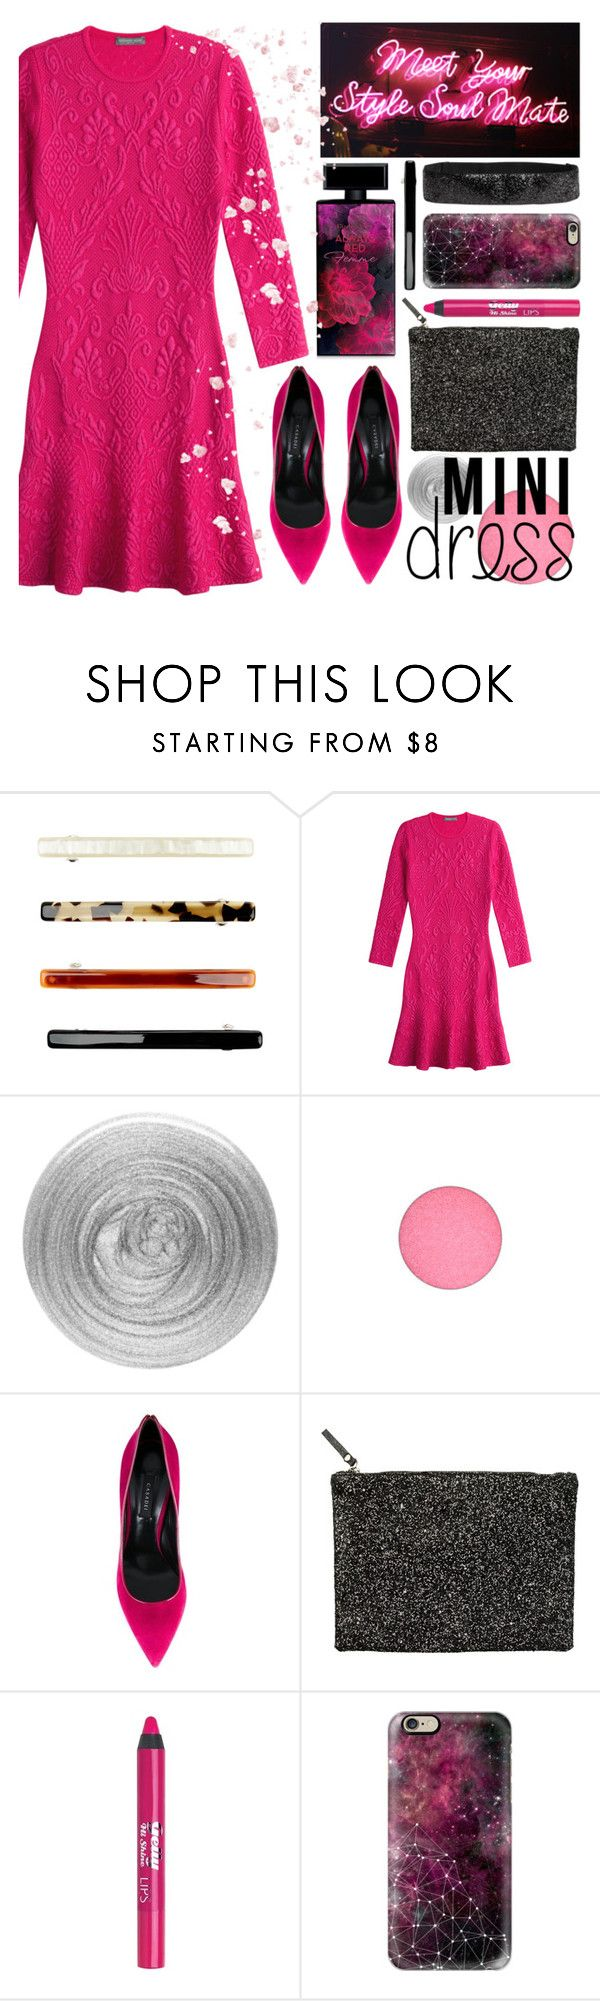 """new year party"" by foundlostme ❤ liked on Polyvore featuring Alexander McQueen, Nails Inc., MAC Cosmetics, Casadei, Hush, Barry M, Casetify, Elizabeth Arden and minidress"